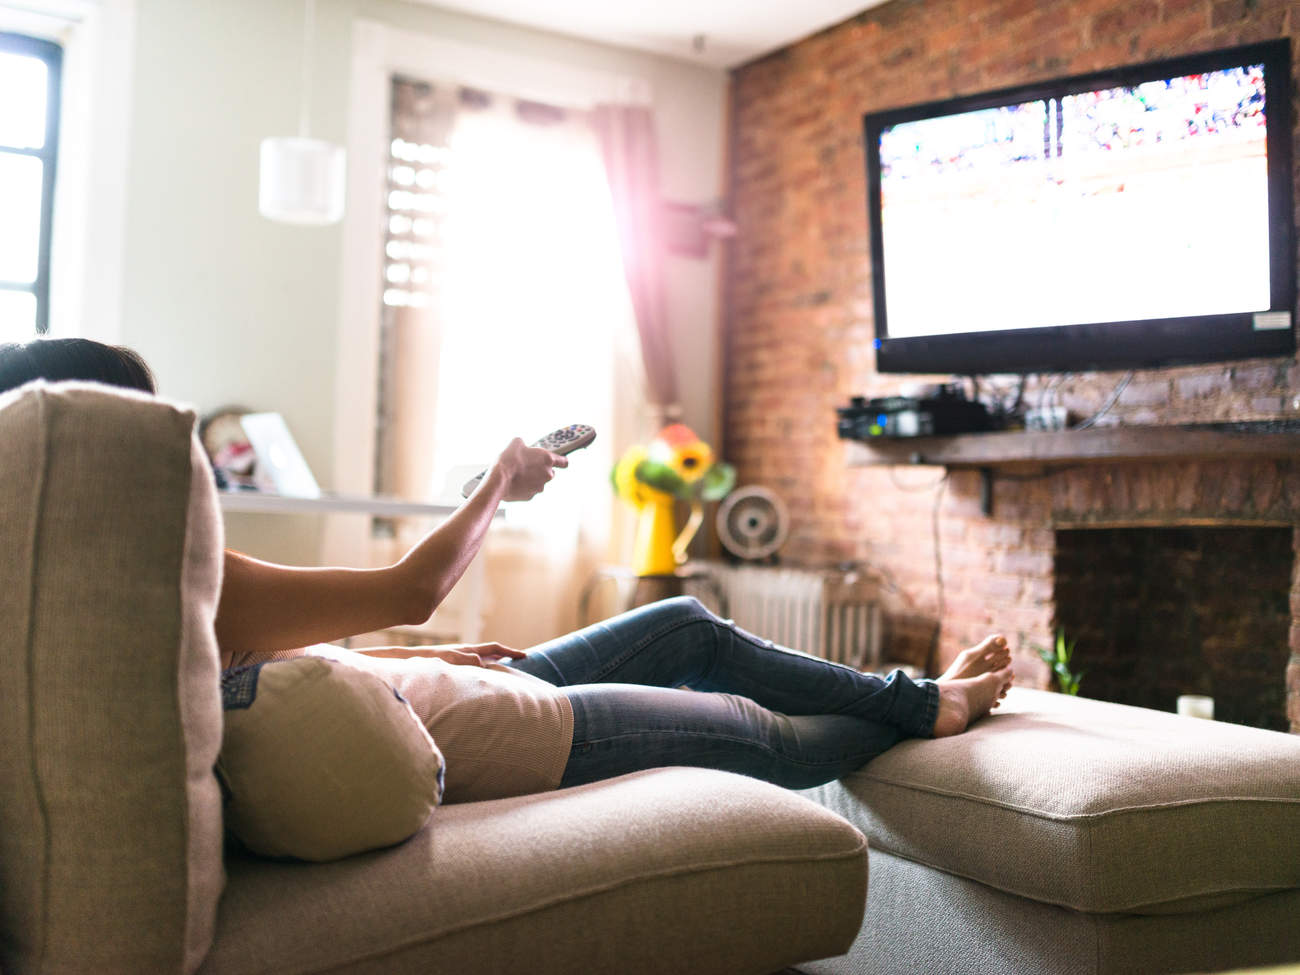 Woman lounging on couch watching TV